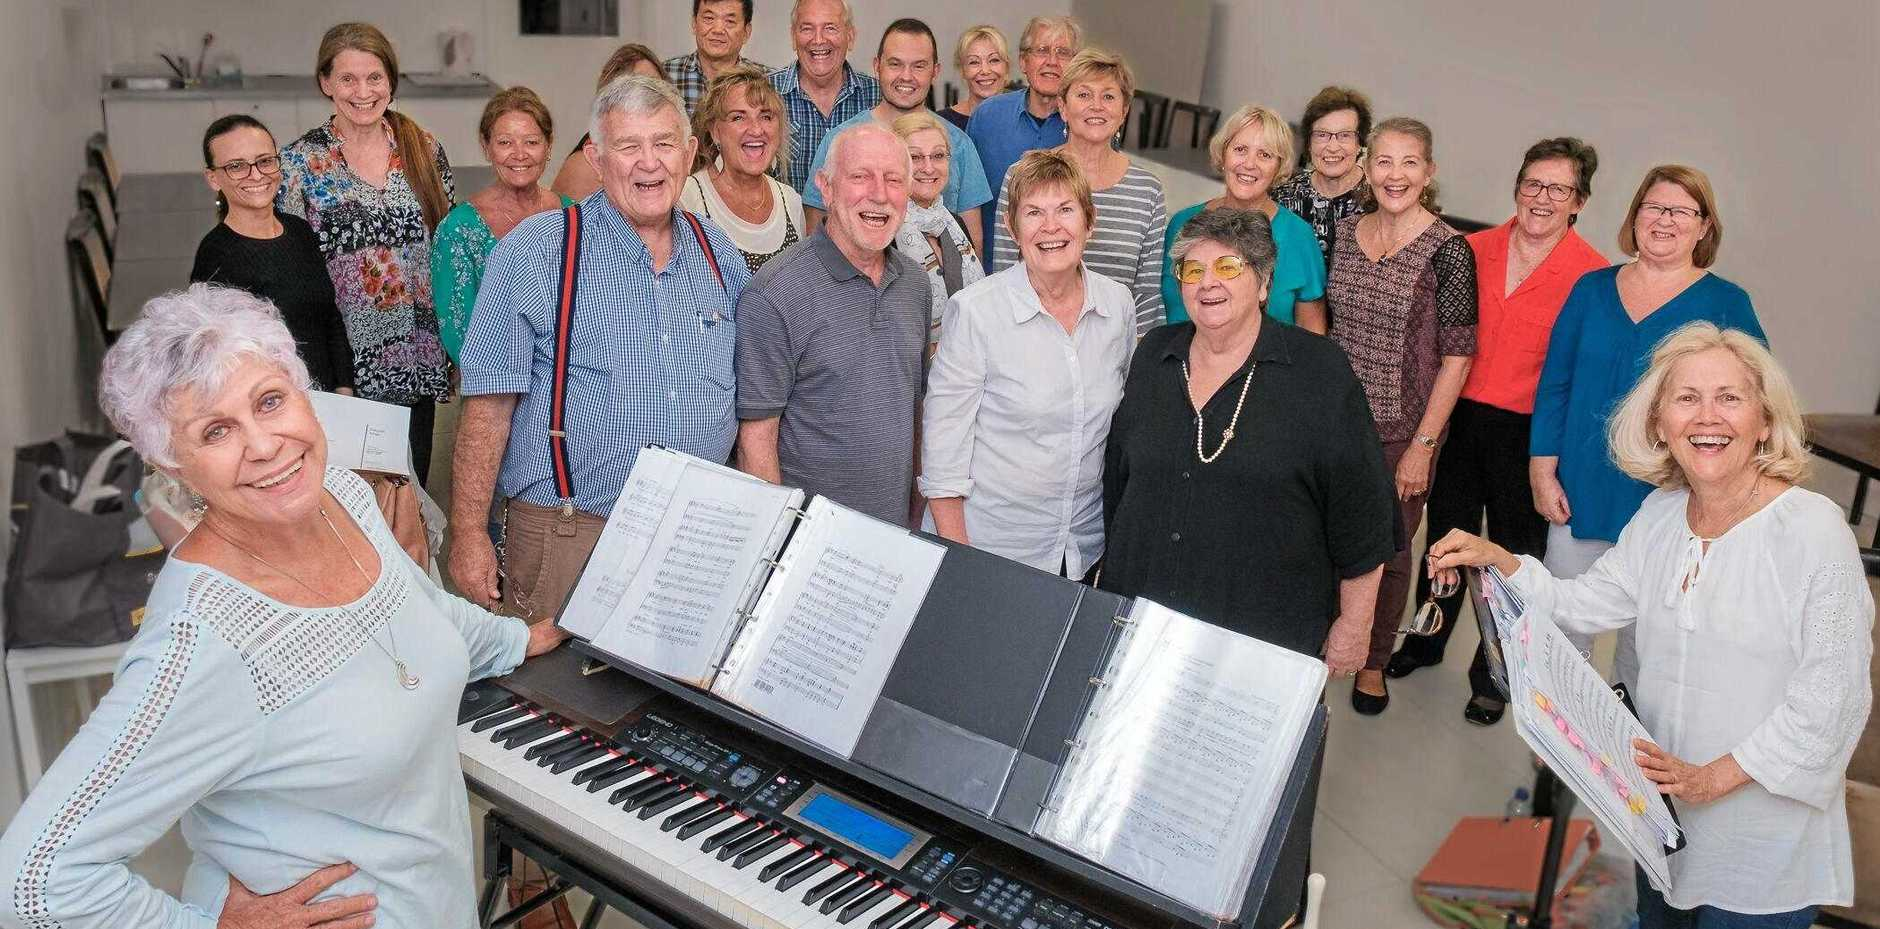 DROUGHT RELIEF CONCERT: Fasolati music director Mary Walters, conductor Anne Ryan, the original Fasolati group (front) Diana Dureau, Henk Steenhuis, Leigh and Jan Kealton, with some of the choir in rehearsal.